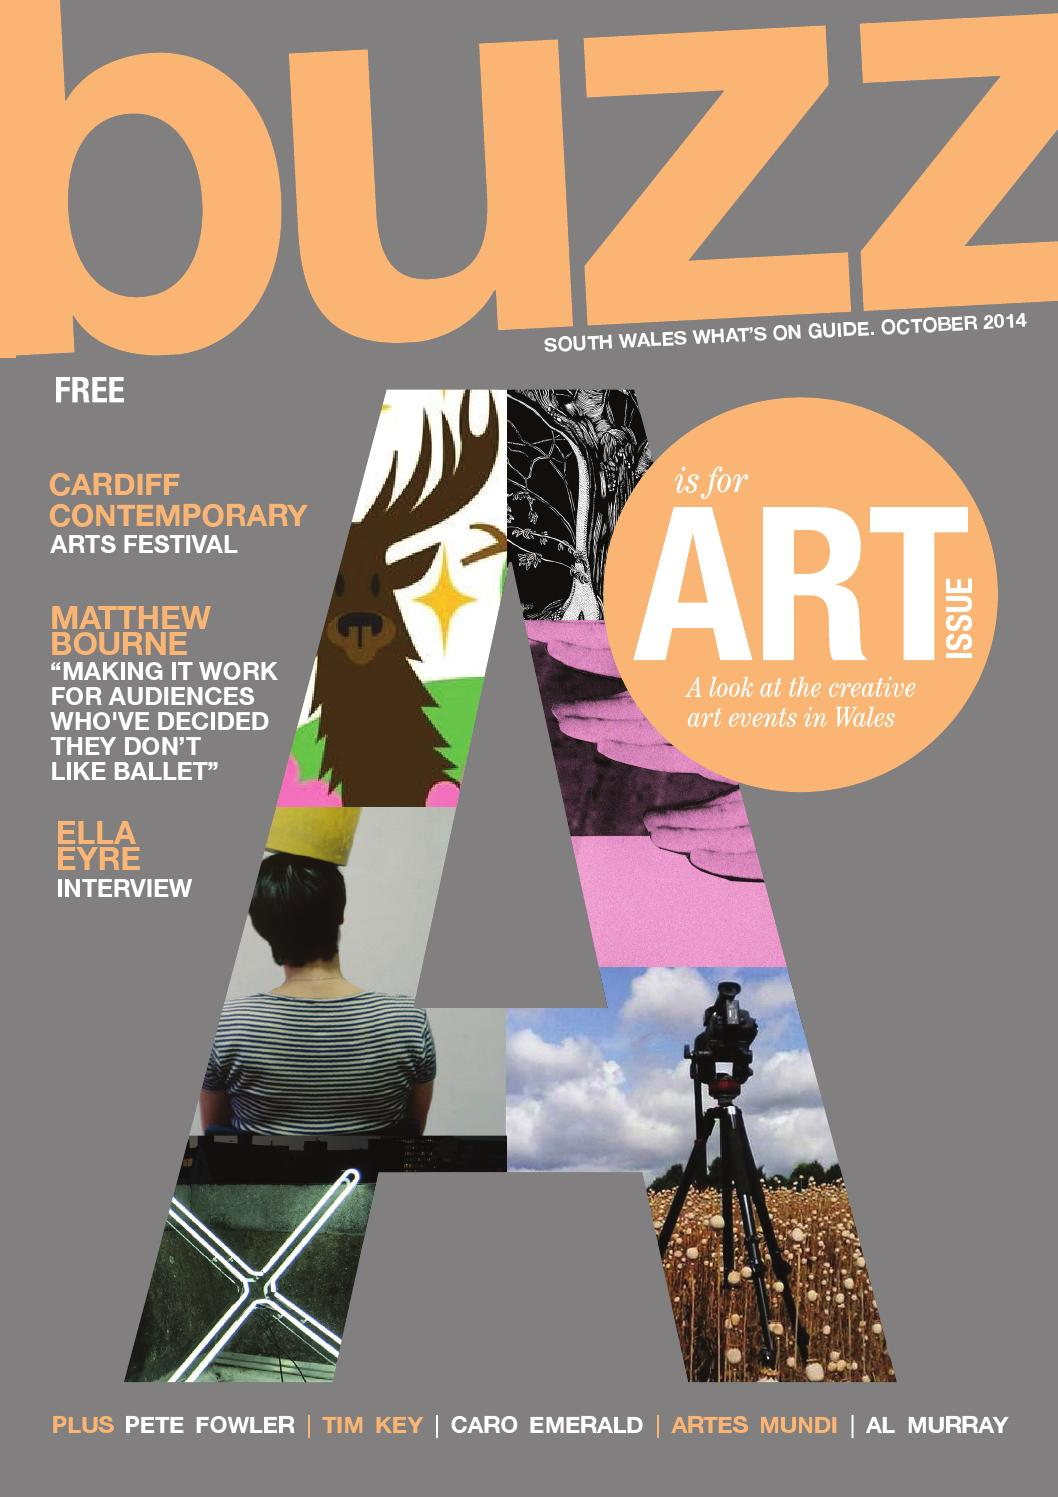 Buzz October Issue Art Special By Magazine Issuu Mousetrap Catapult Diagram College Of Arts And Sciences